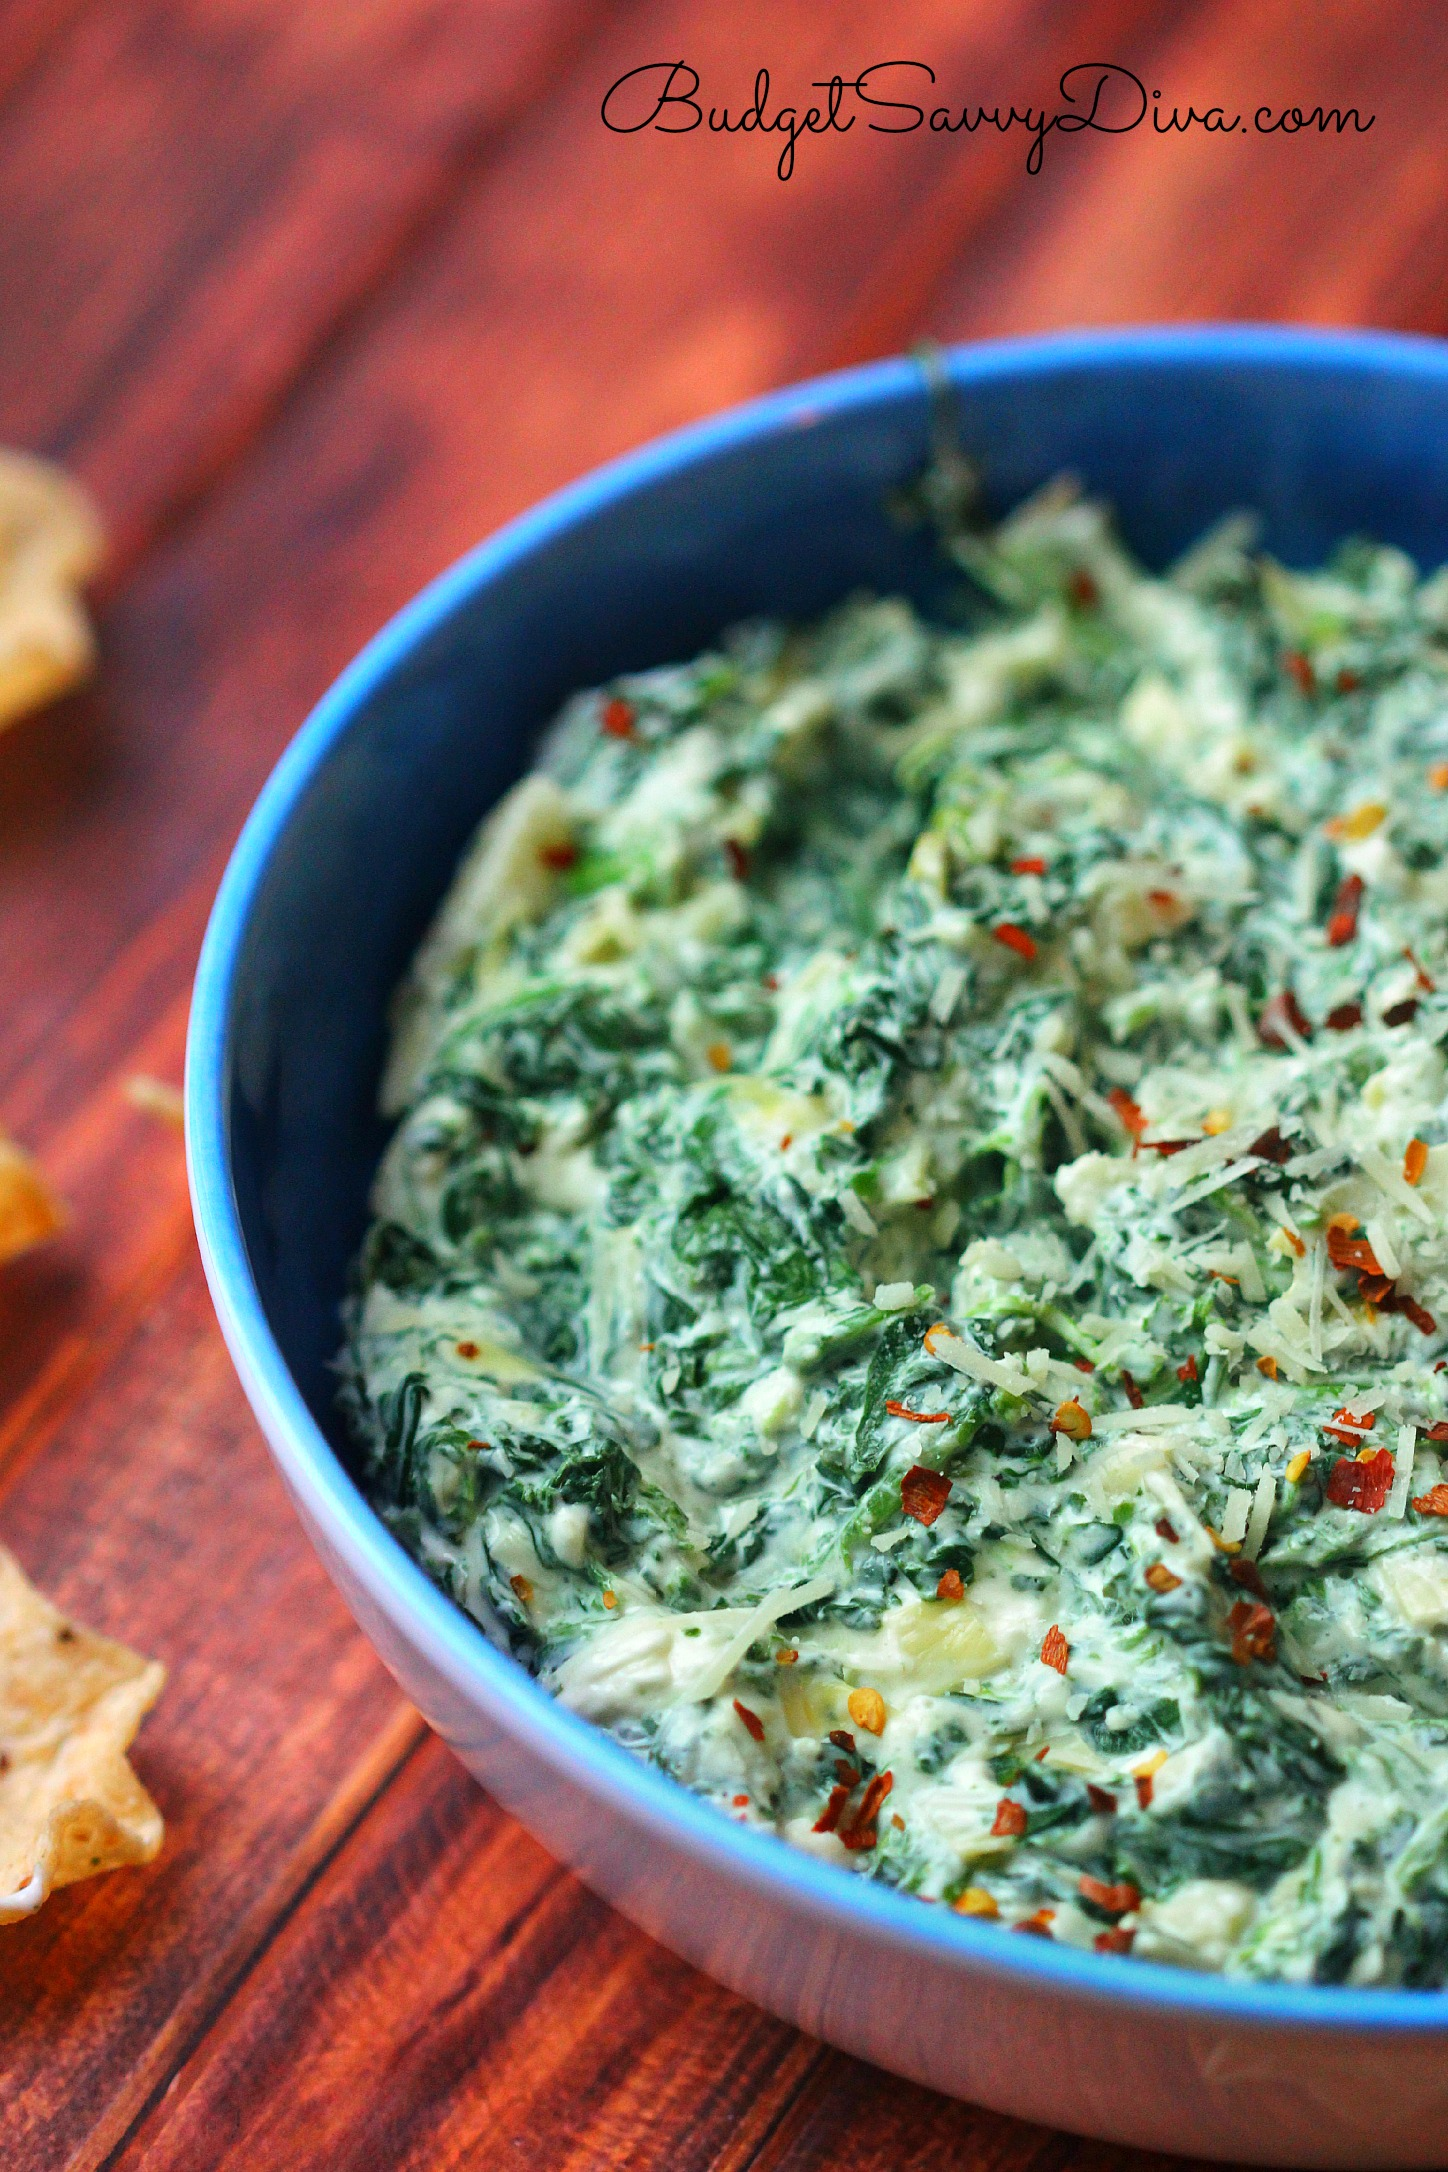 Easy Spinach and Artichoke Dip Recipe | Budget Savvy Diva